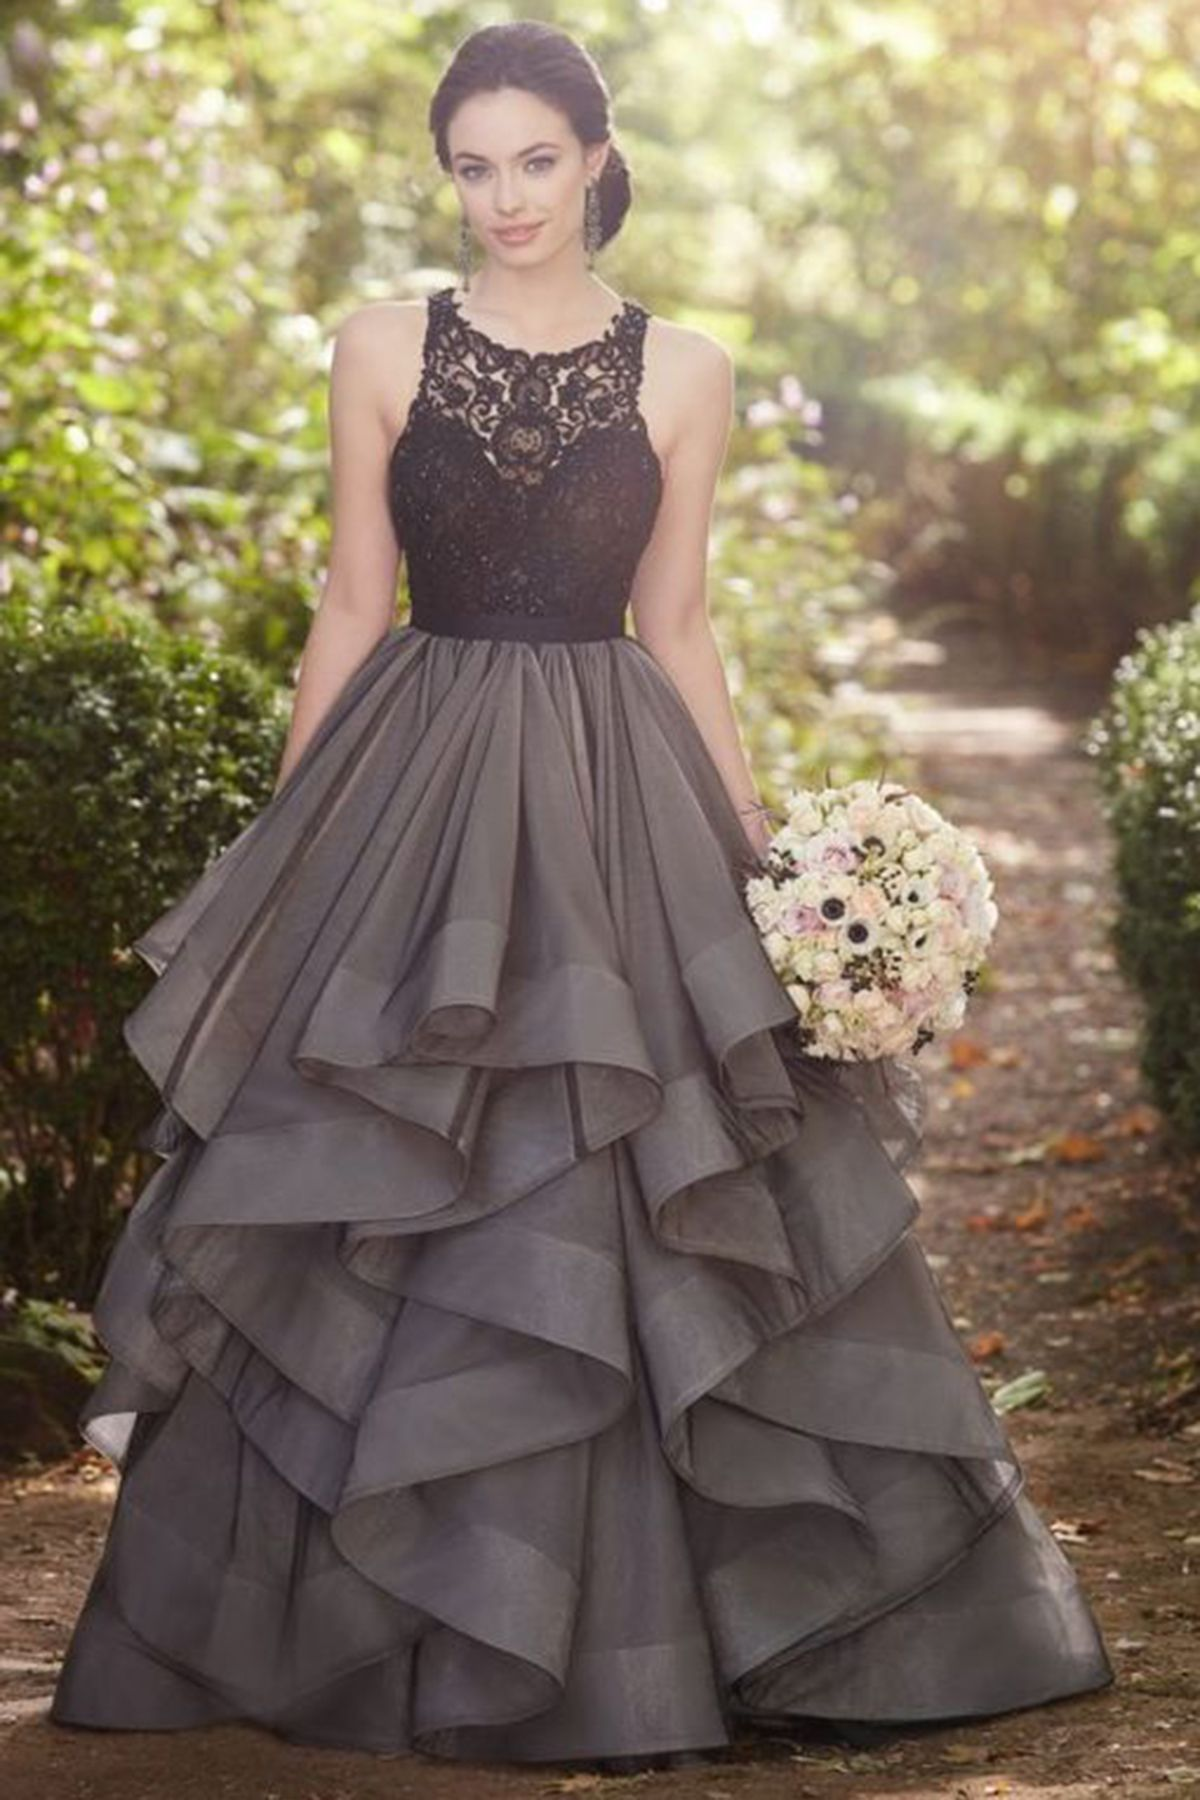 Black tulle lace aline long dressprom dress for graduation from